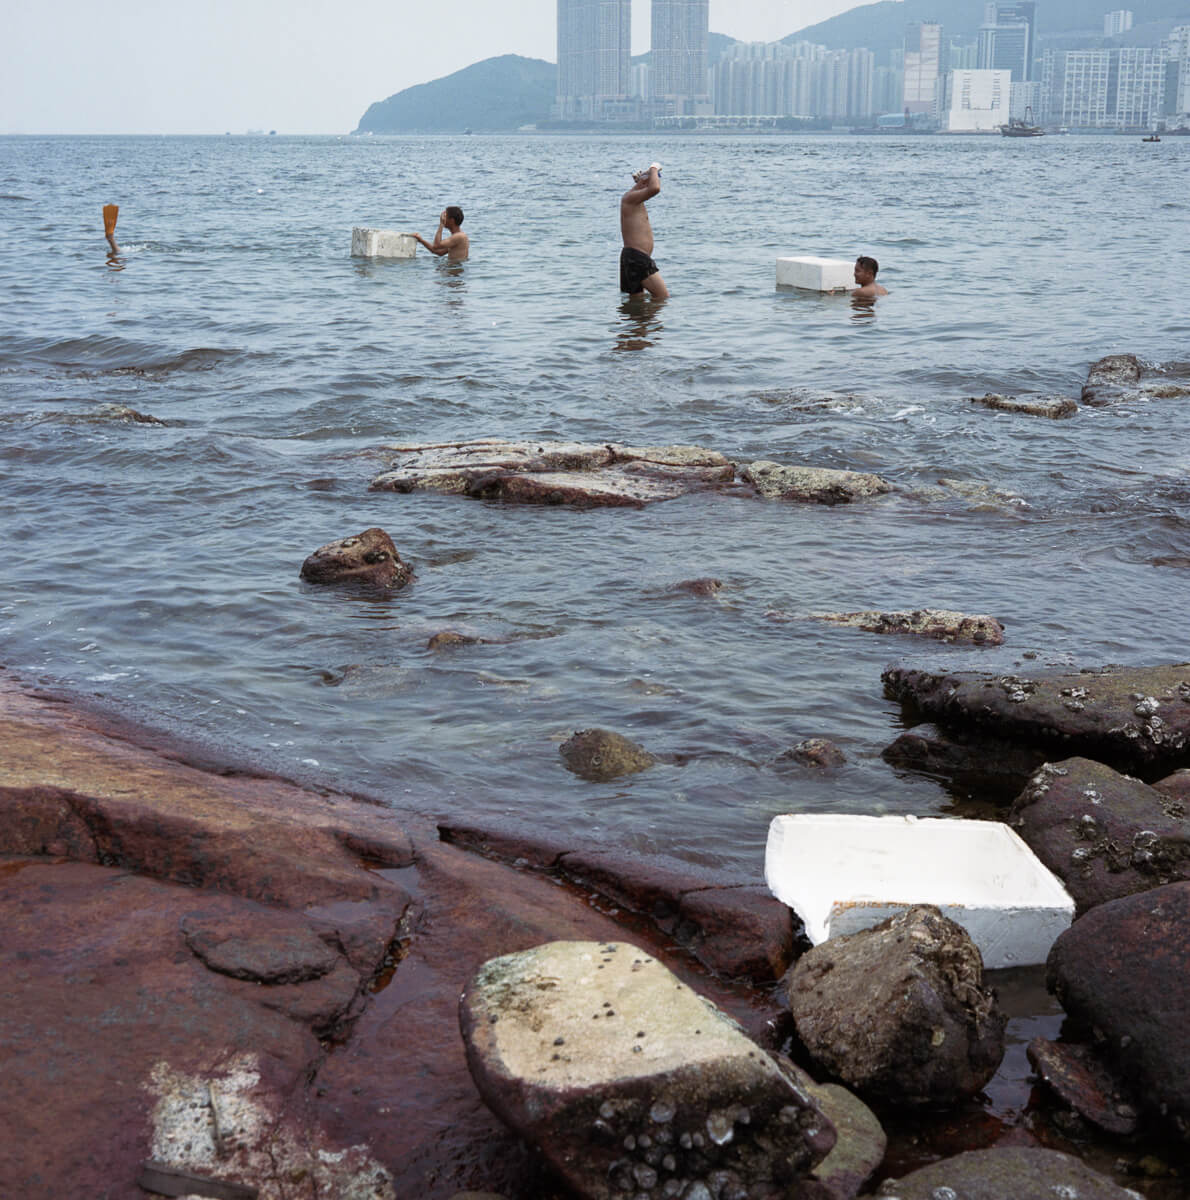 三家村-鋰魚門-fisherman-diving-to-catch-clams-cliff-Portra-400-iso400-Hong-Kong-HK-Lei-Yu-Mun-Mamiya-C330-80mm-f2.8-medium-format-120-Analog-film-review